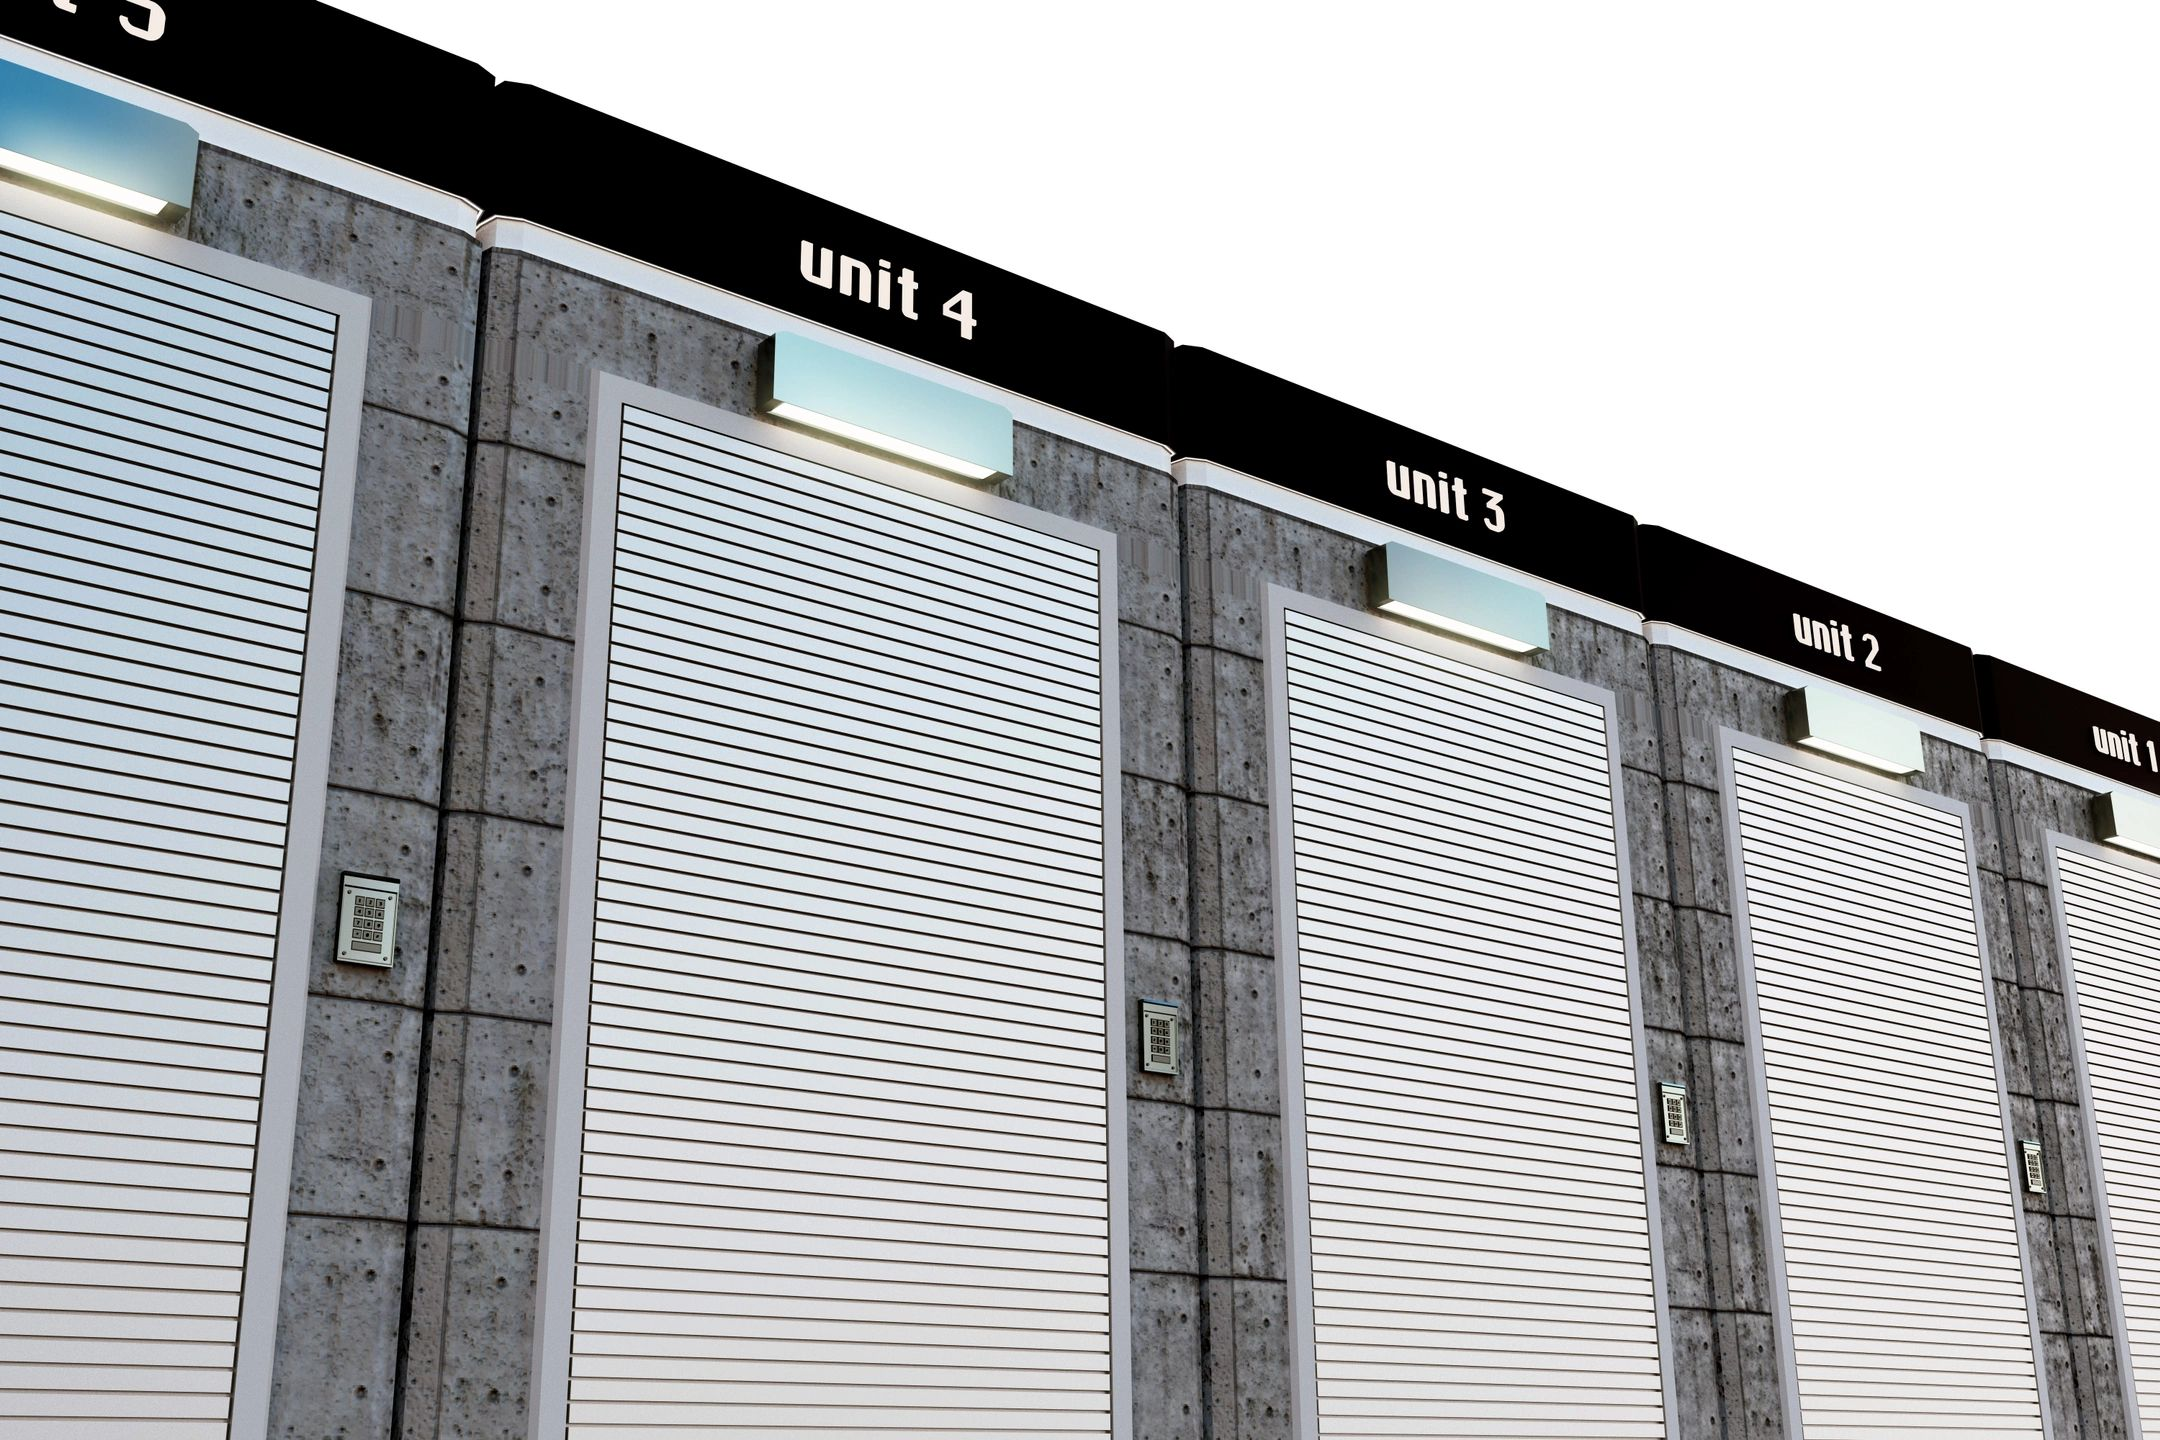 Storage Unit Cost Storage Units Cost Calculator Compare Moving And Storage